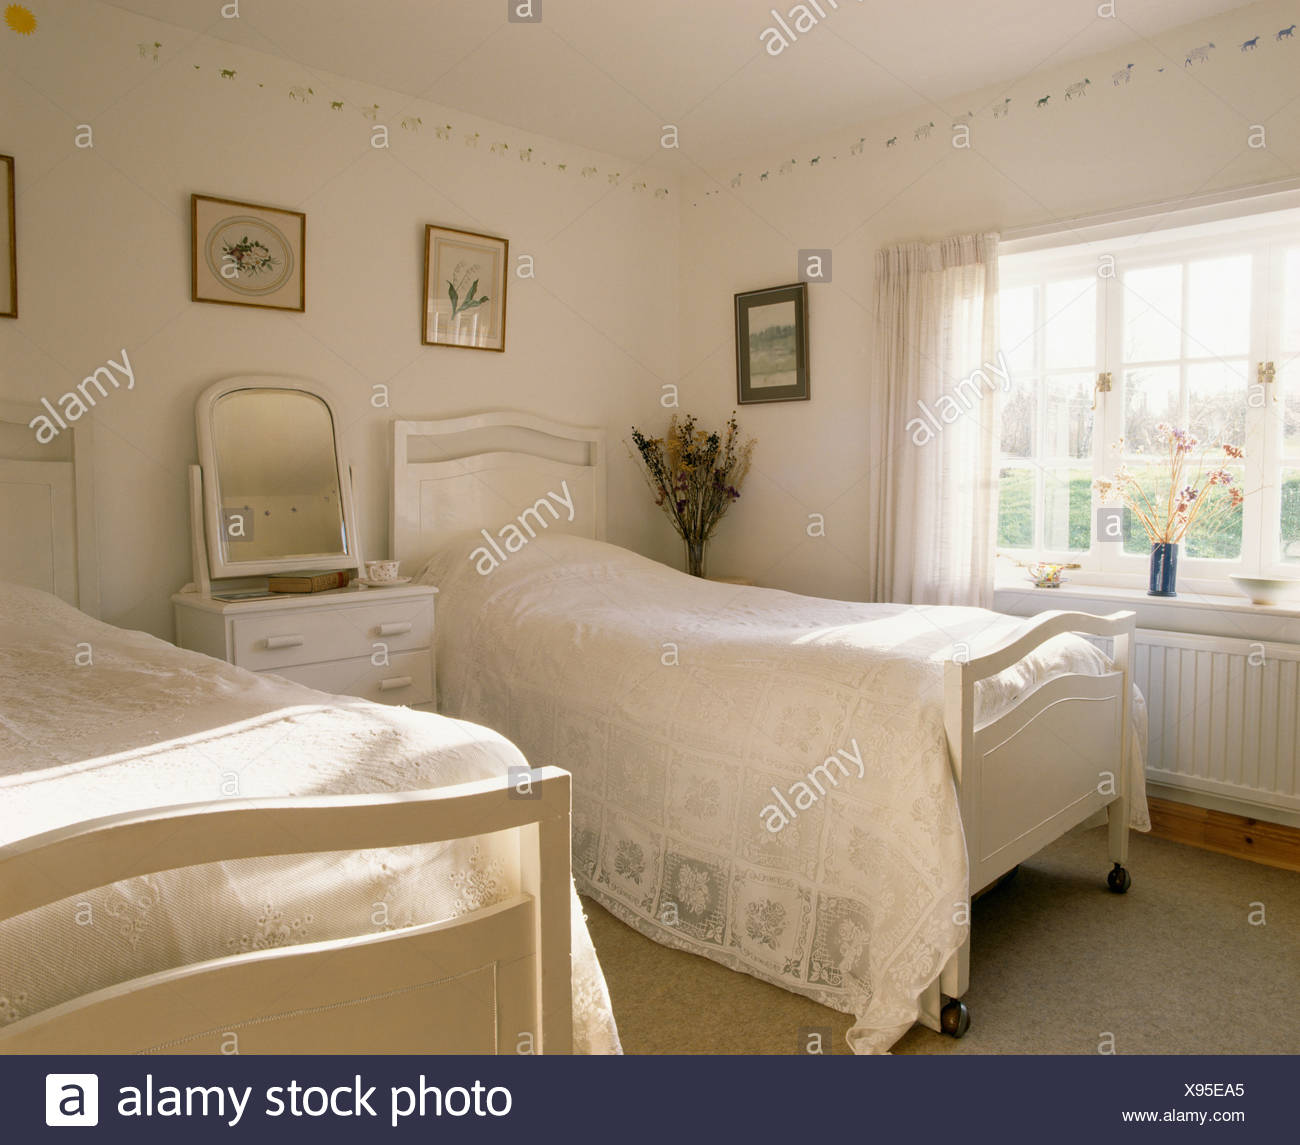 White Twin Beds With White Bed Covers In Traditional White Bedroom